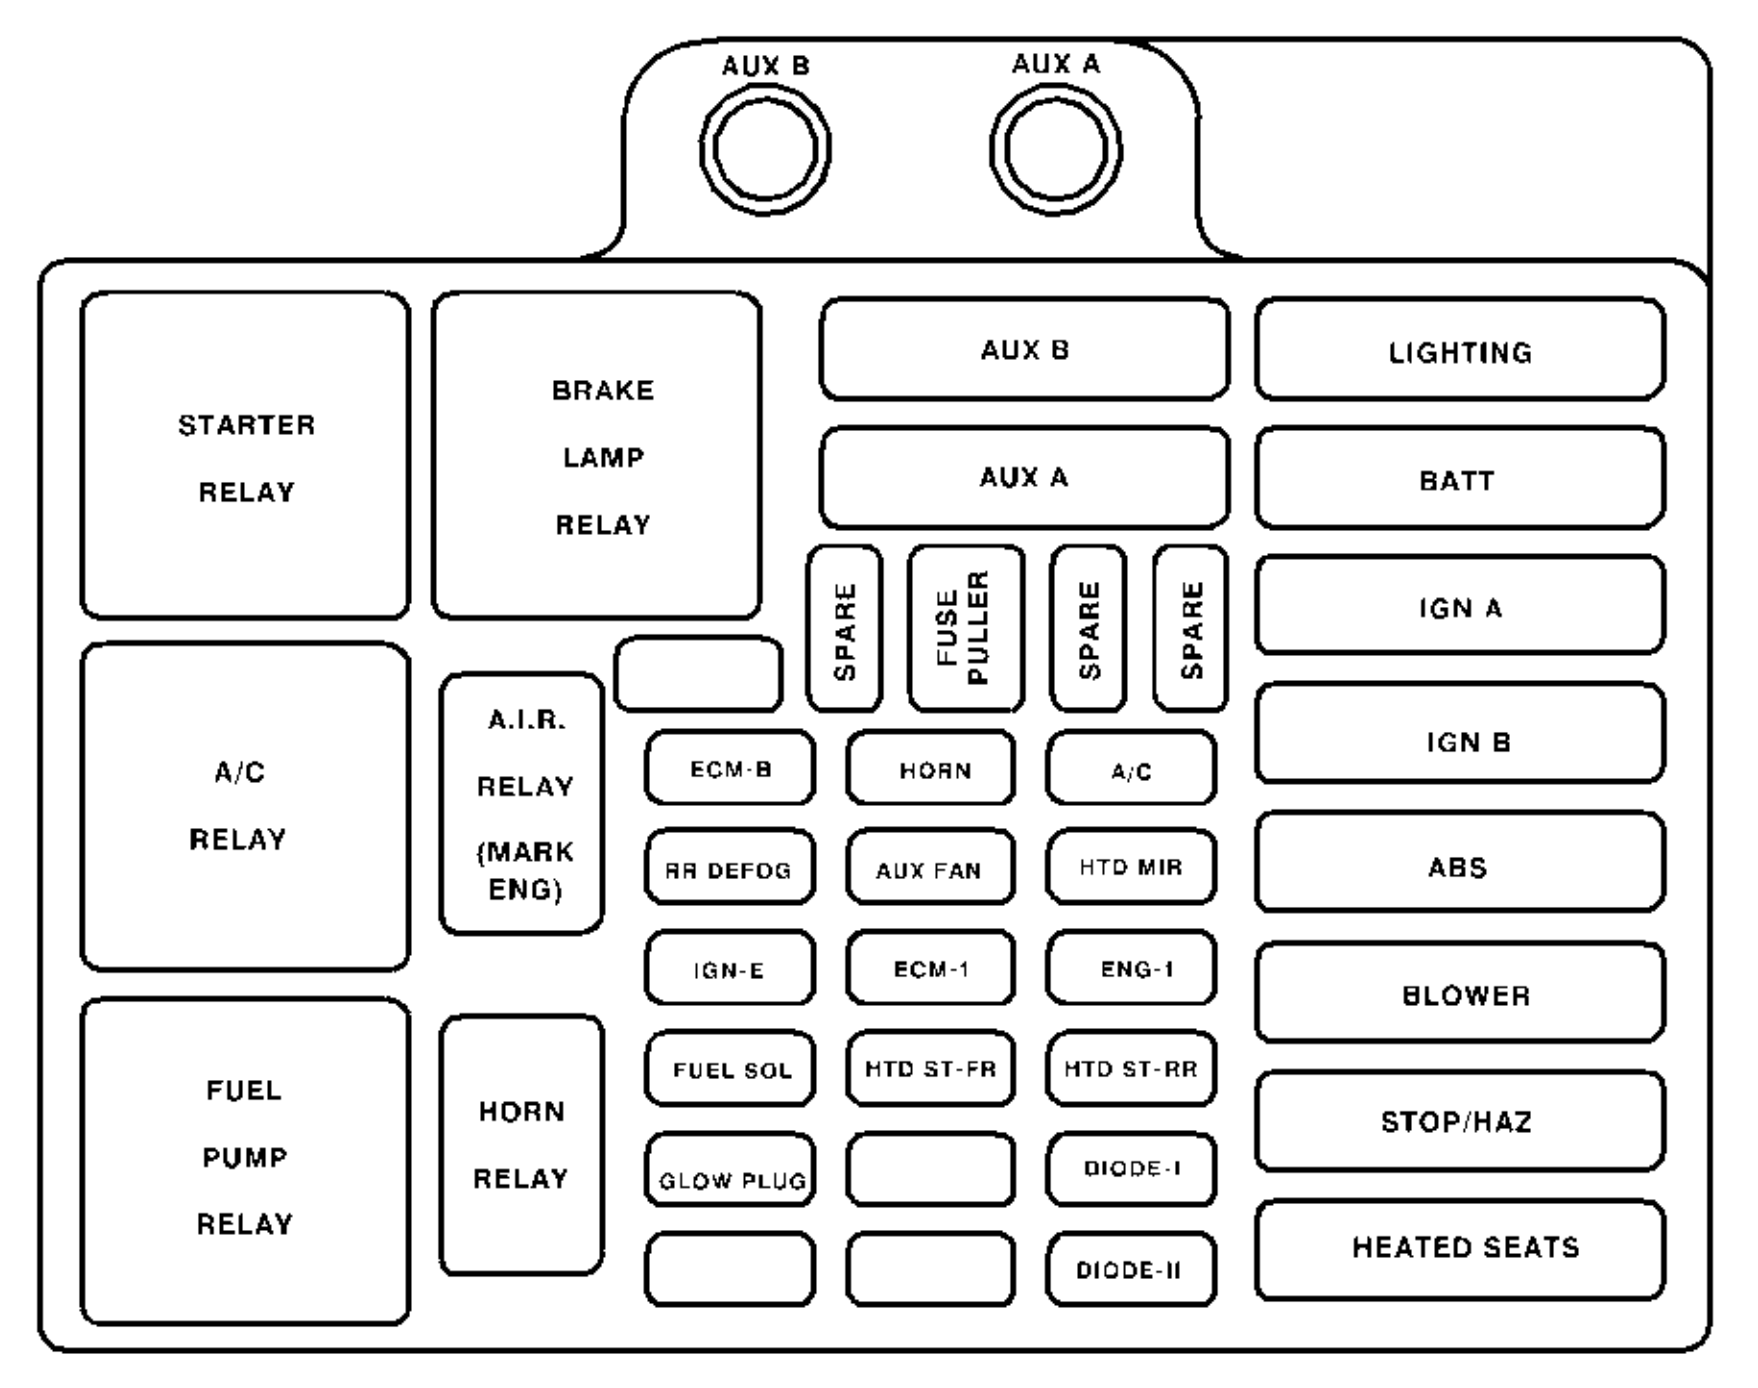 hight resolution of yukon fuse diagram wiring diagram forward 1996 gmc yukon wiring diagram gmc yukon fuse box diagram